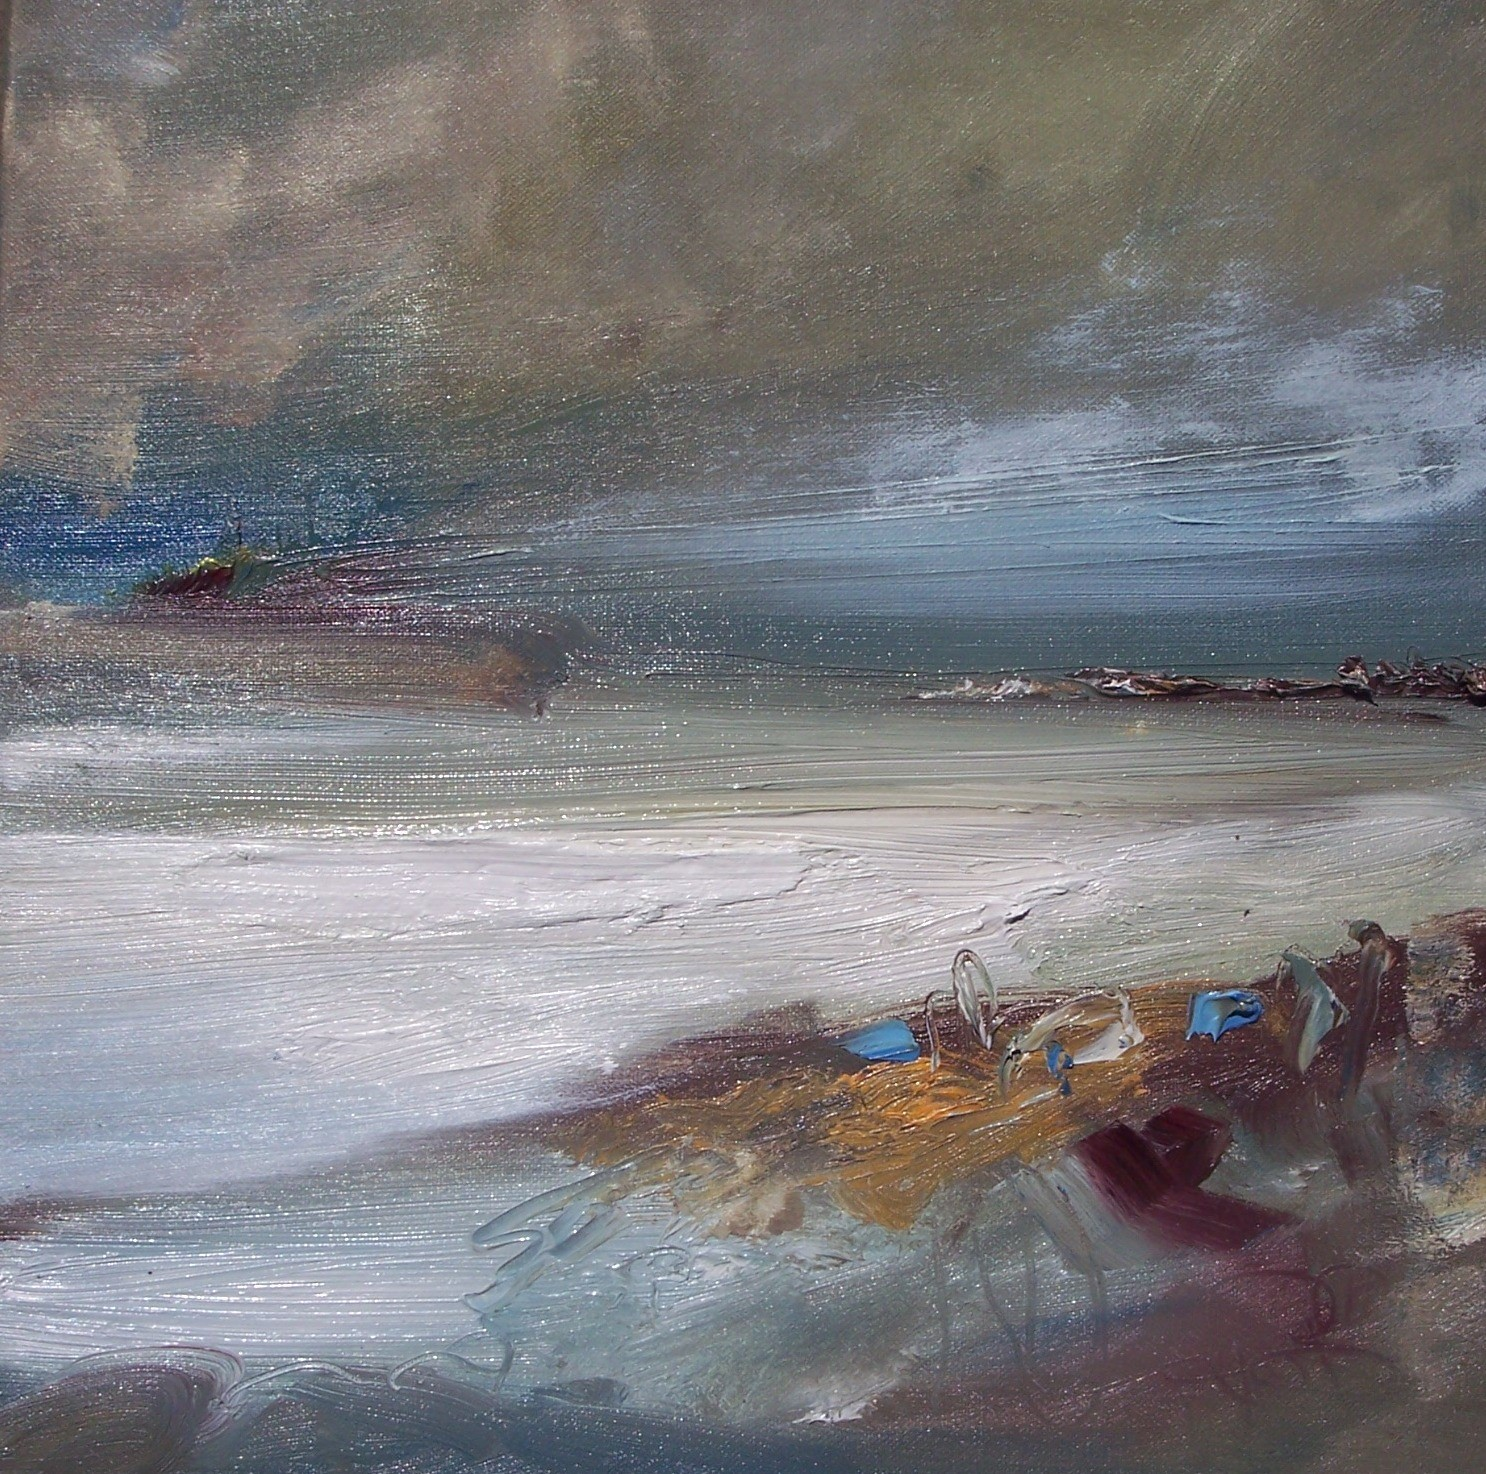 'In the midst of a storm' by artist Rosanne Barr